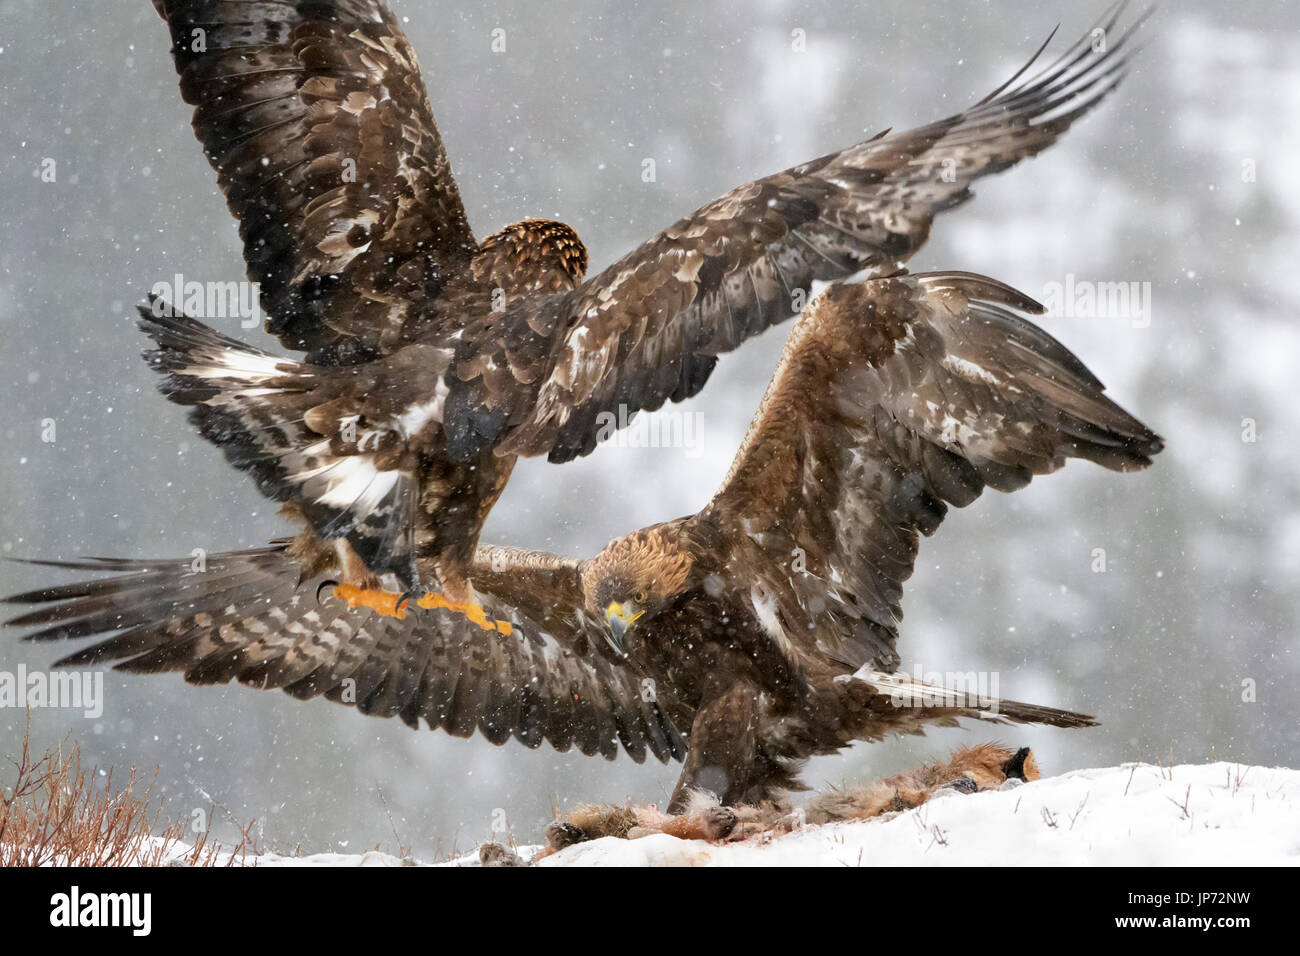 Golden eagle (Aquila chrysaetos) fighting during snowfall, Norway - Stock Image